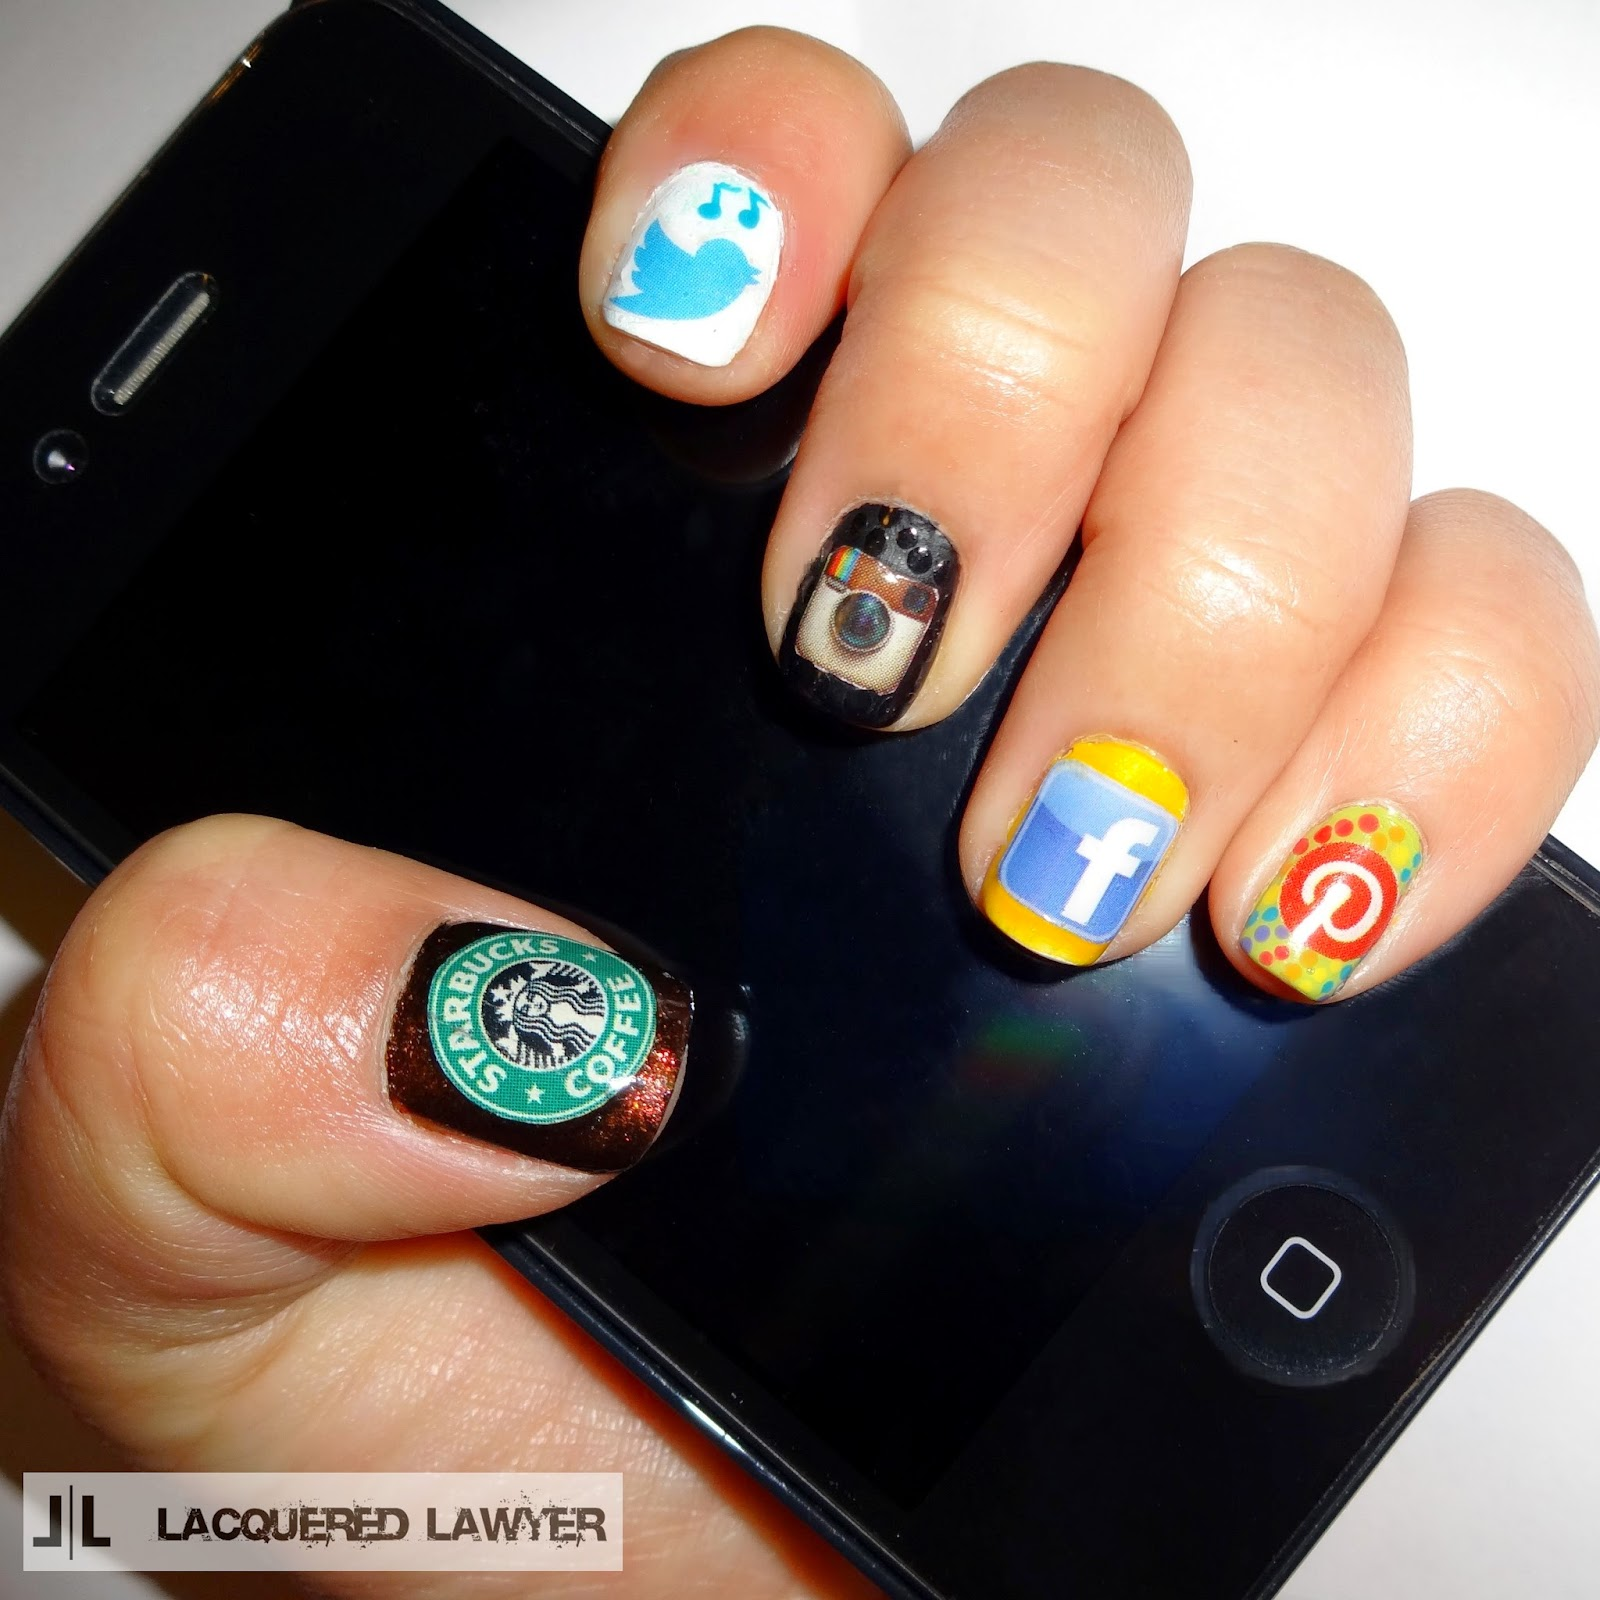 Lacquered Lawyer | Nail Art Blog: July 2014